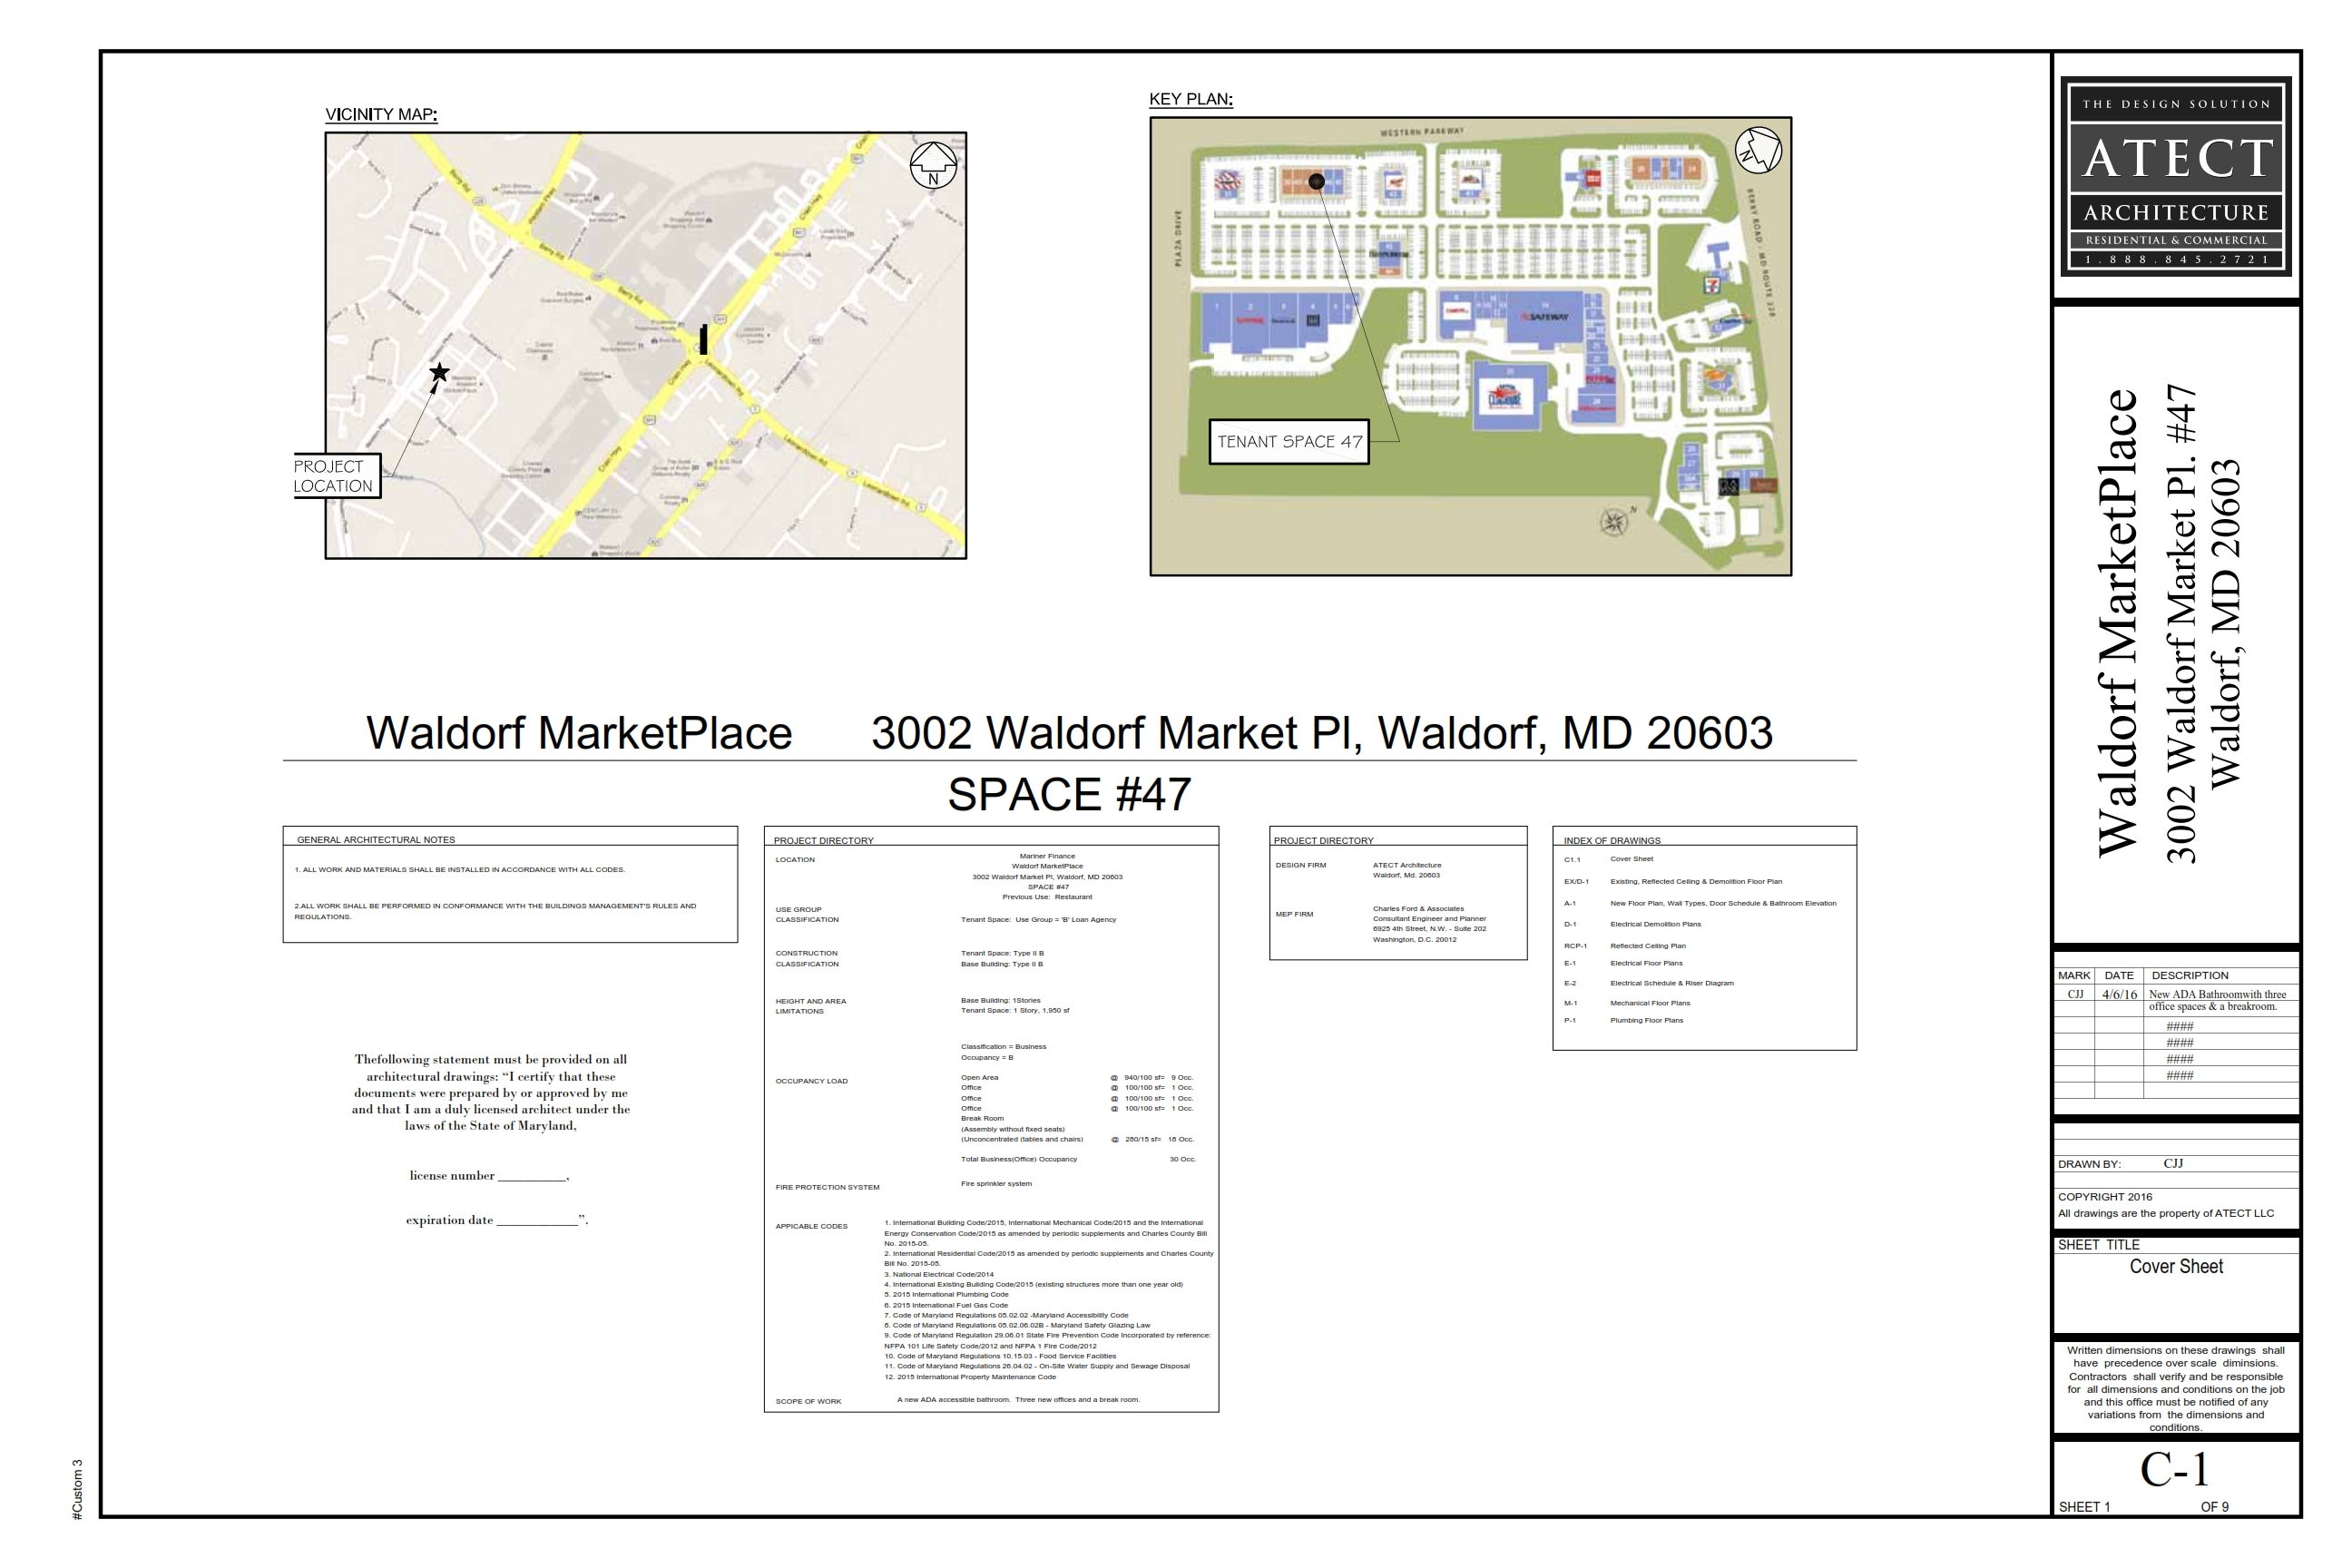 Waldorf Construction Documents_001.jpg